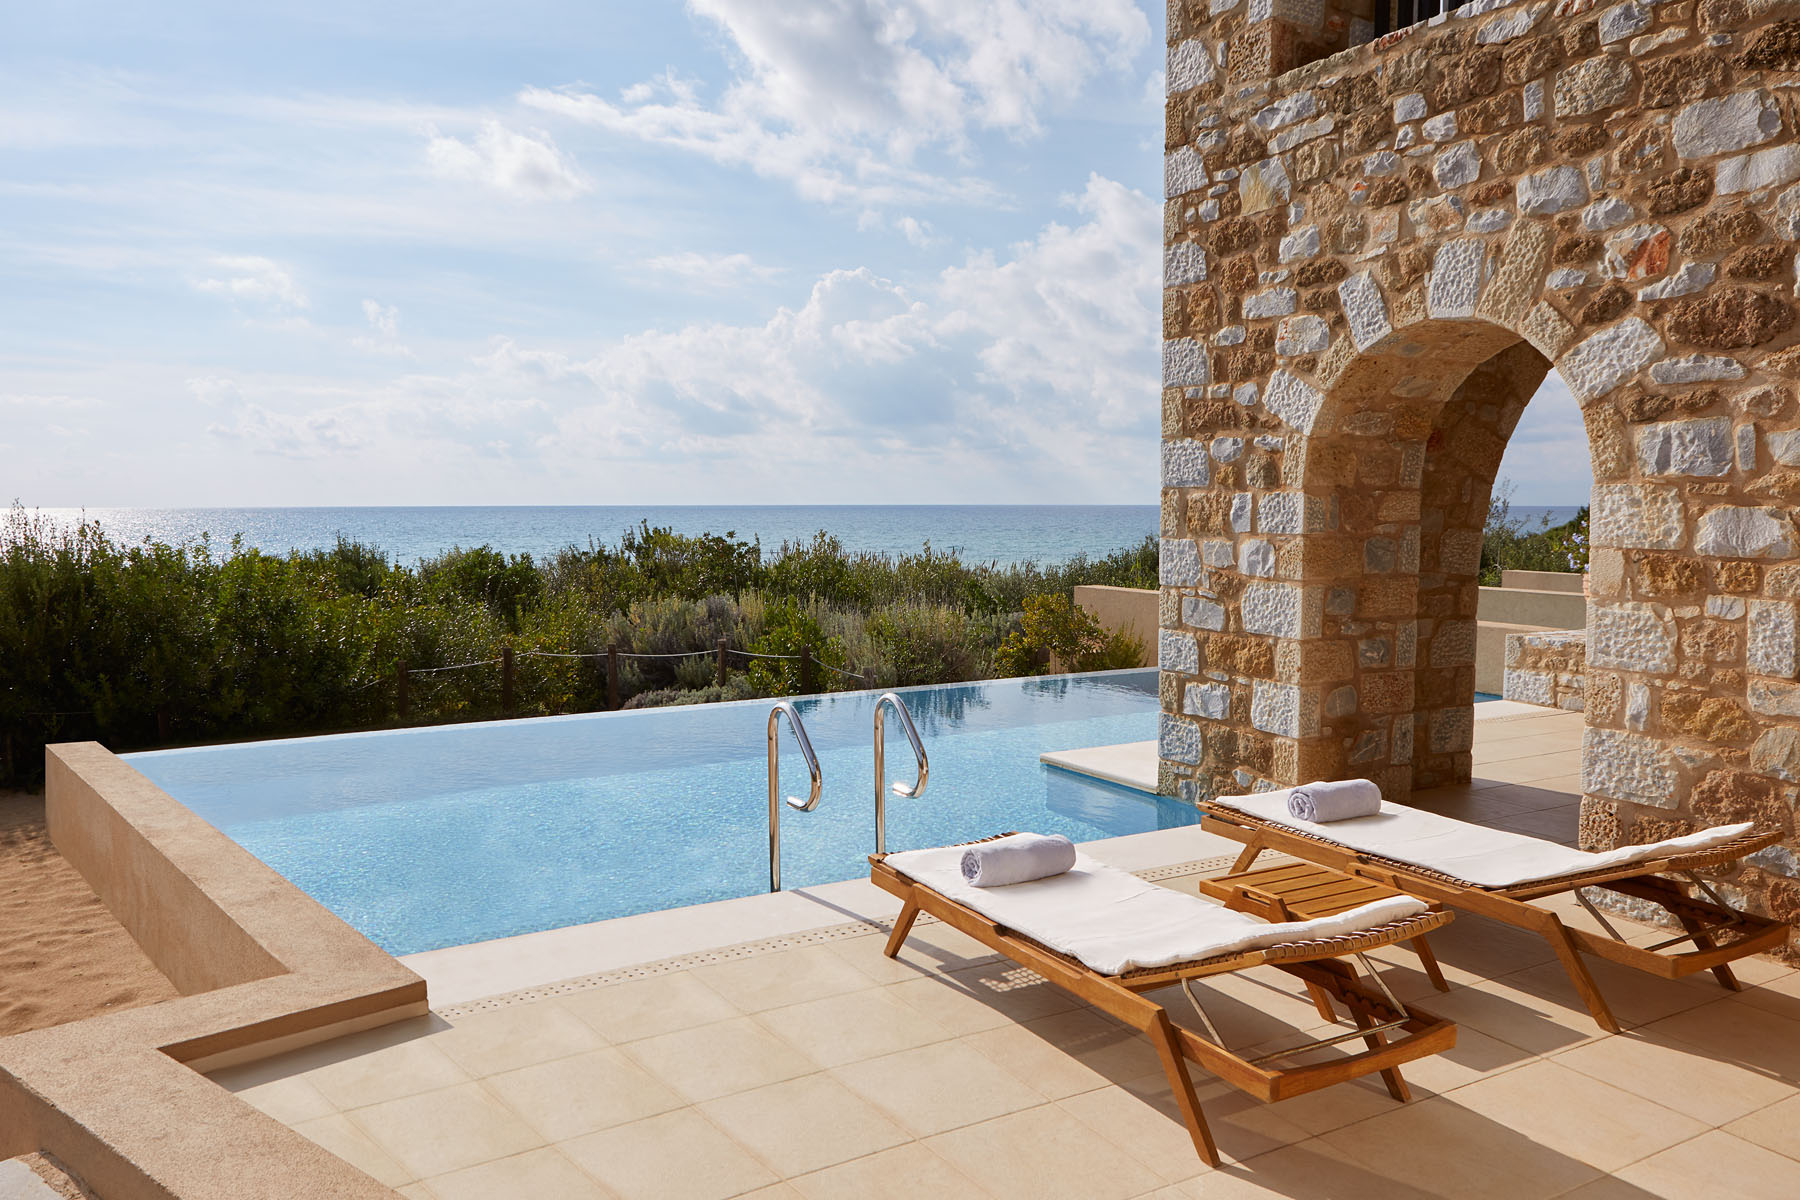 Ταξιδιωτικό γραφείο Mavrogiannis Travel THE WESTIN COSTA NAVARINO